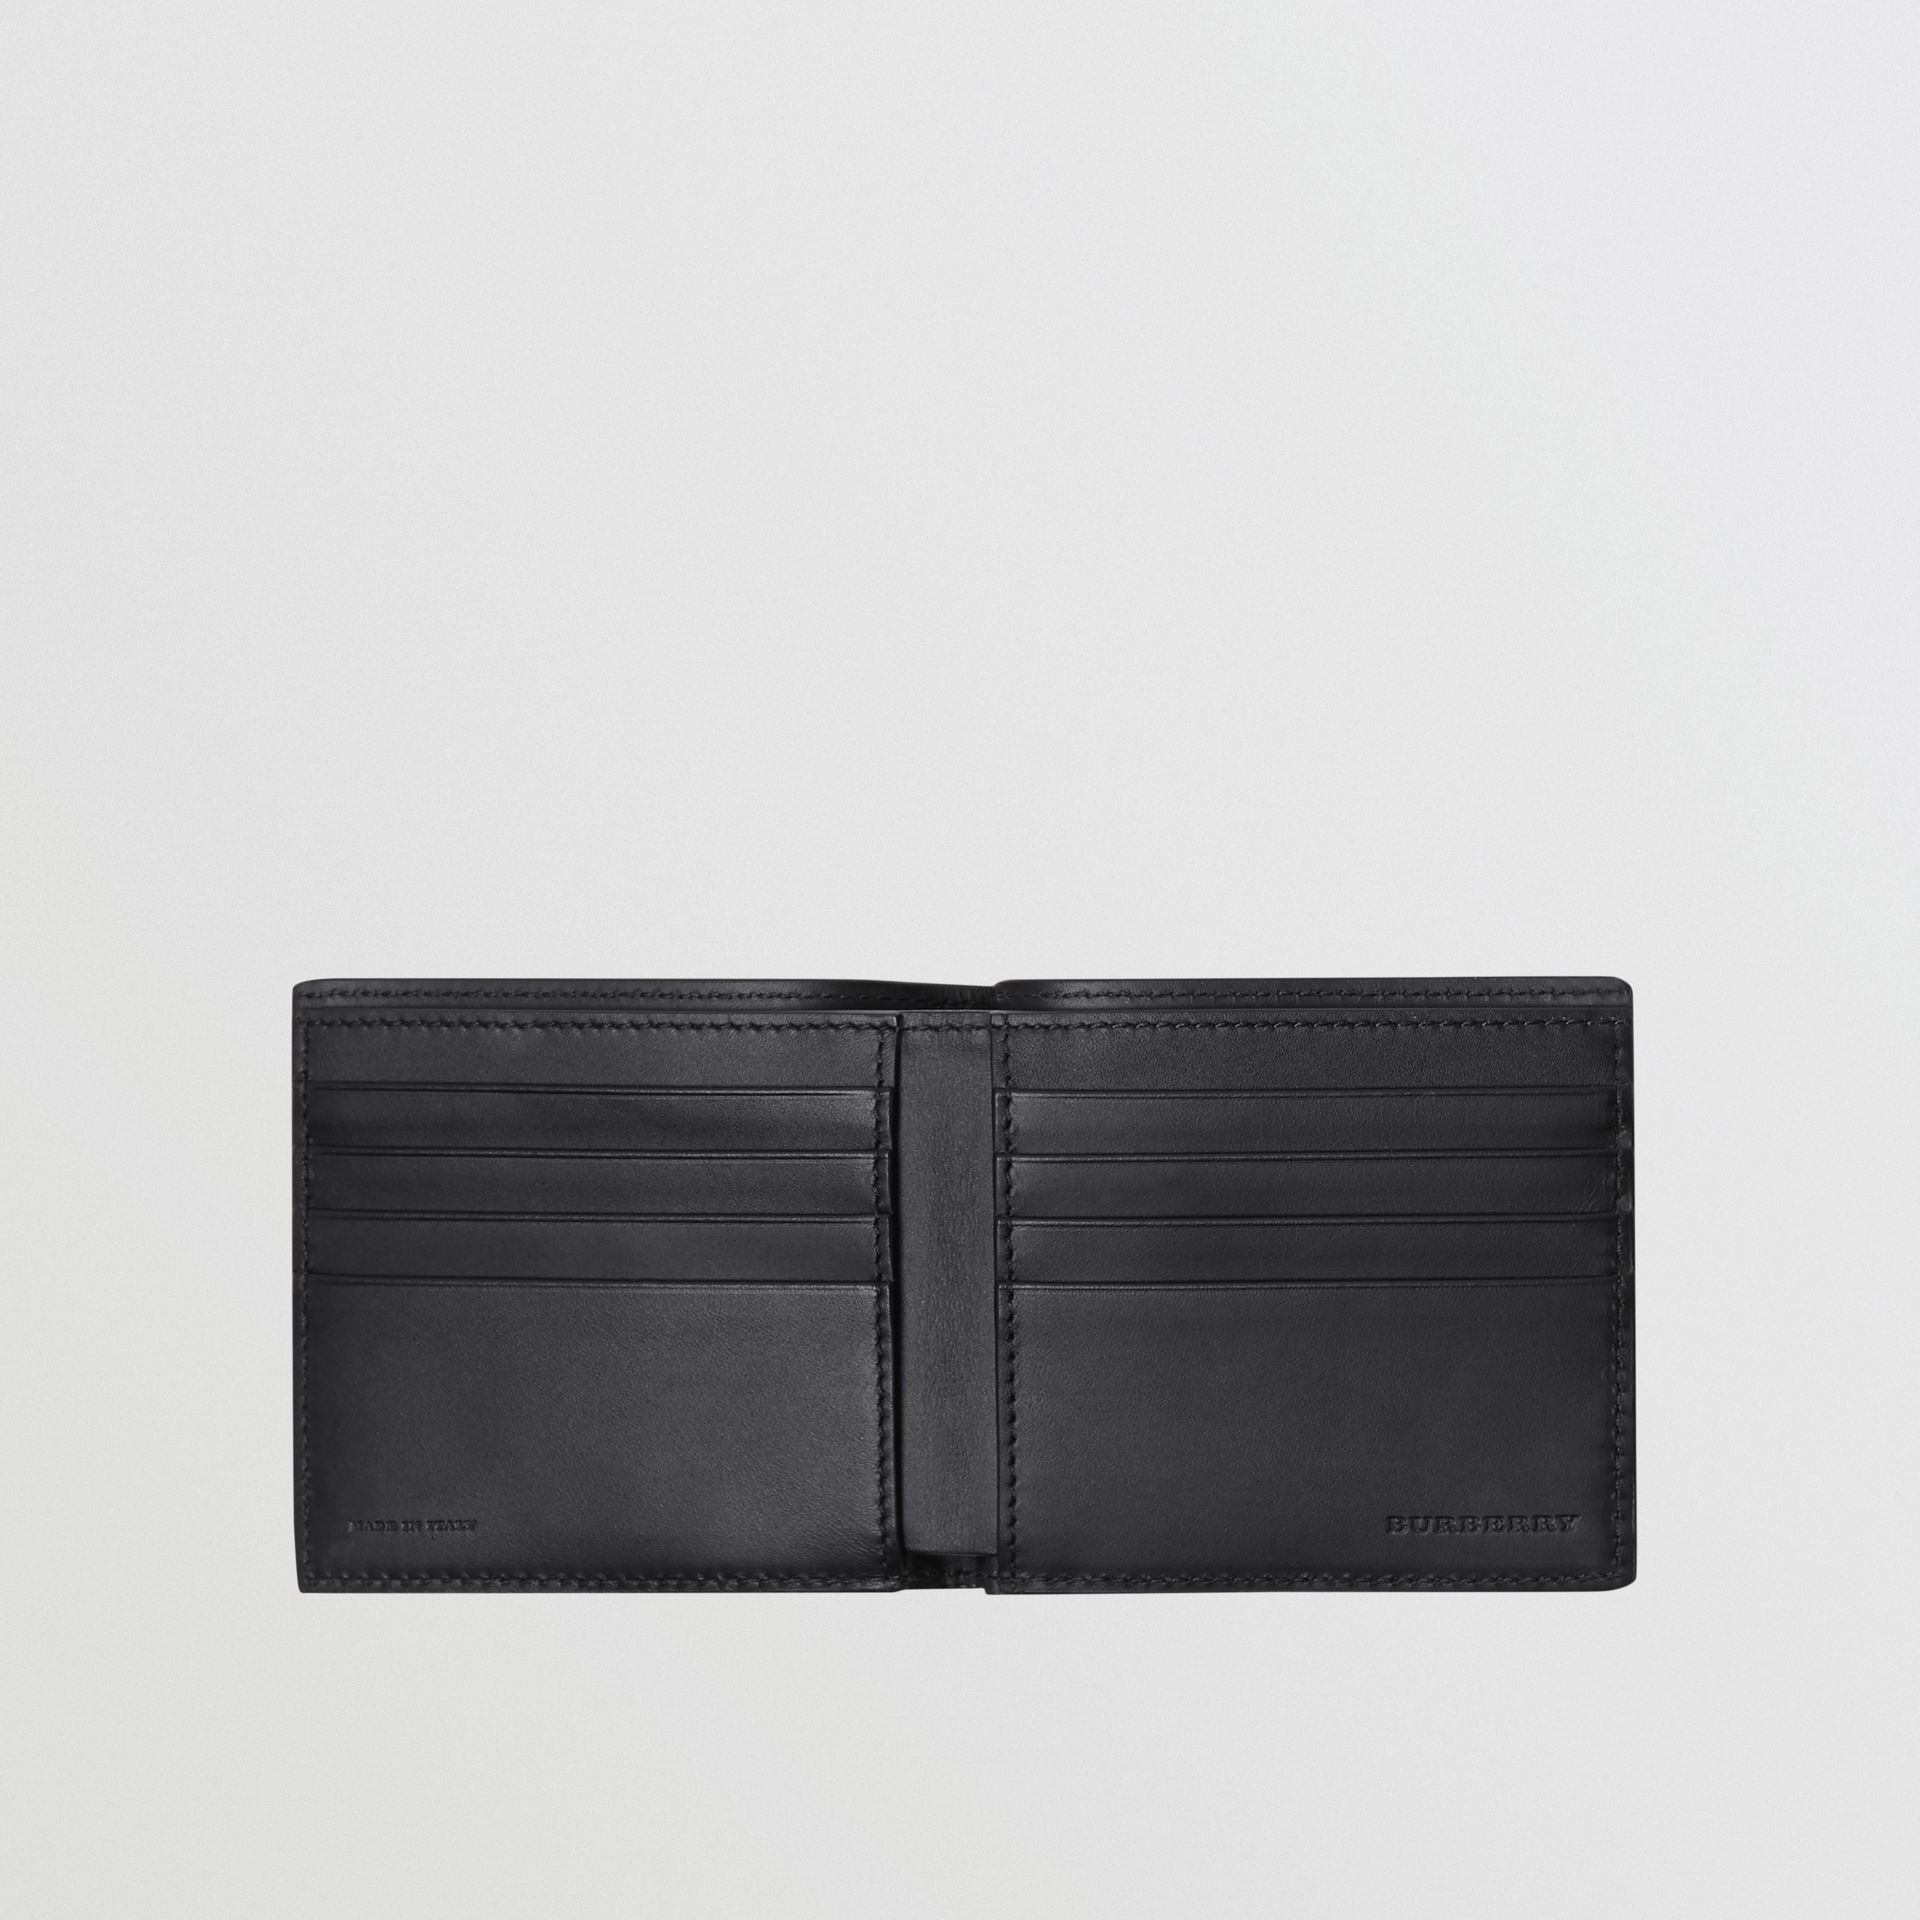 Embossed Crest Leather International Bifold Wallet in Black - Men | Burberry - gallery image 3